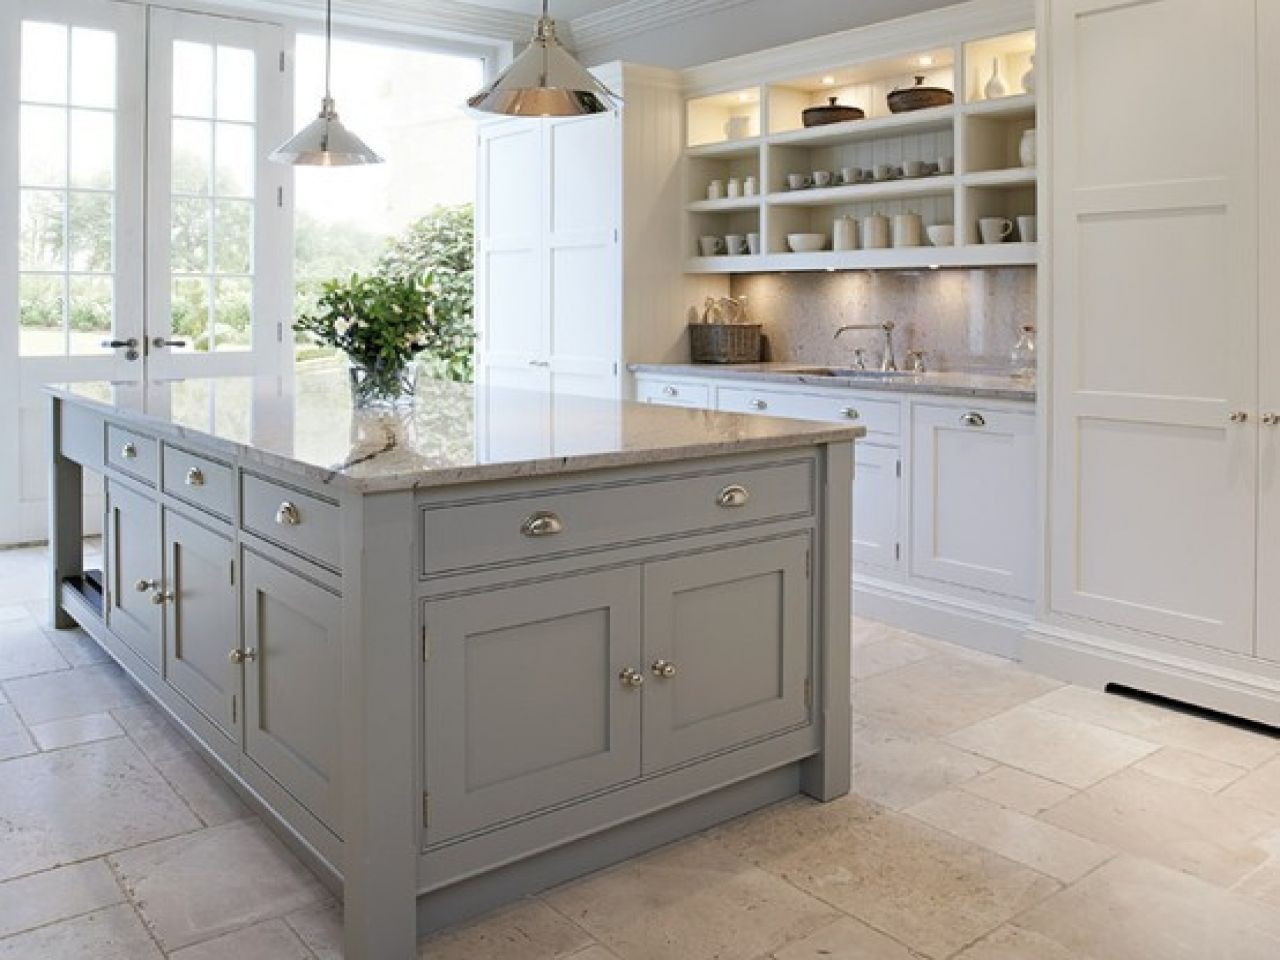 Grey And White Kitchen Island Cabinets Grey And White Country - Country gray kitchen cabinets